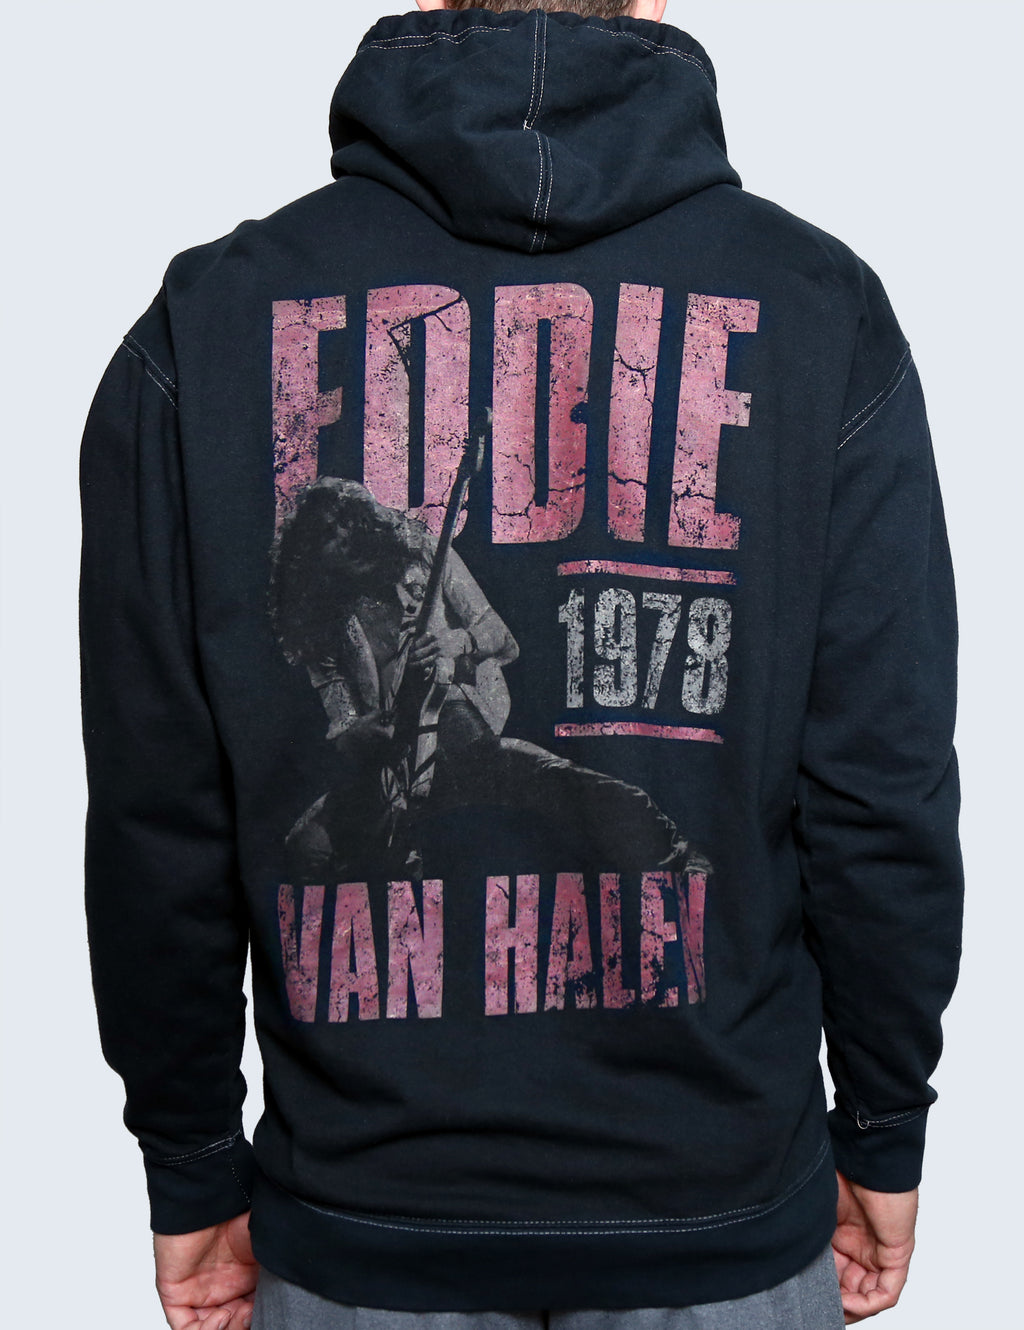 '78 Vintage Wash Black Zip Up Hoodie